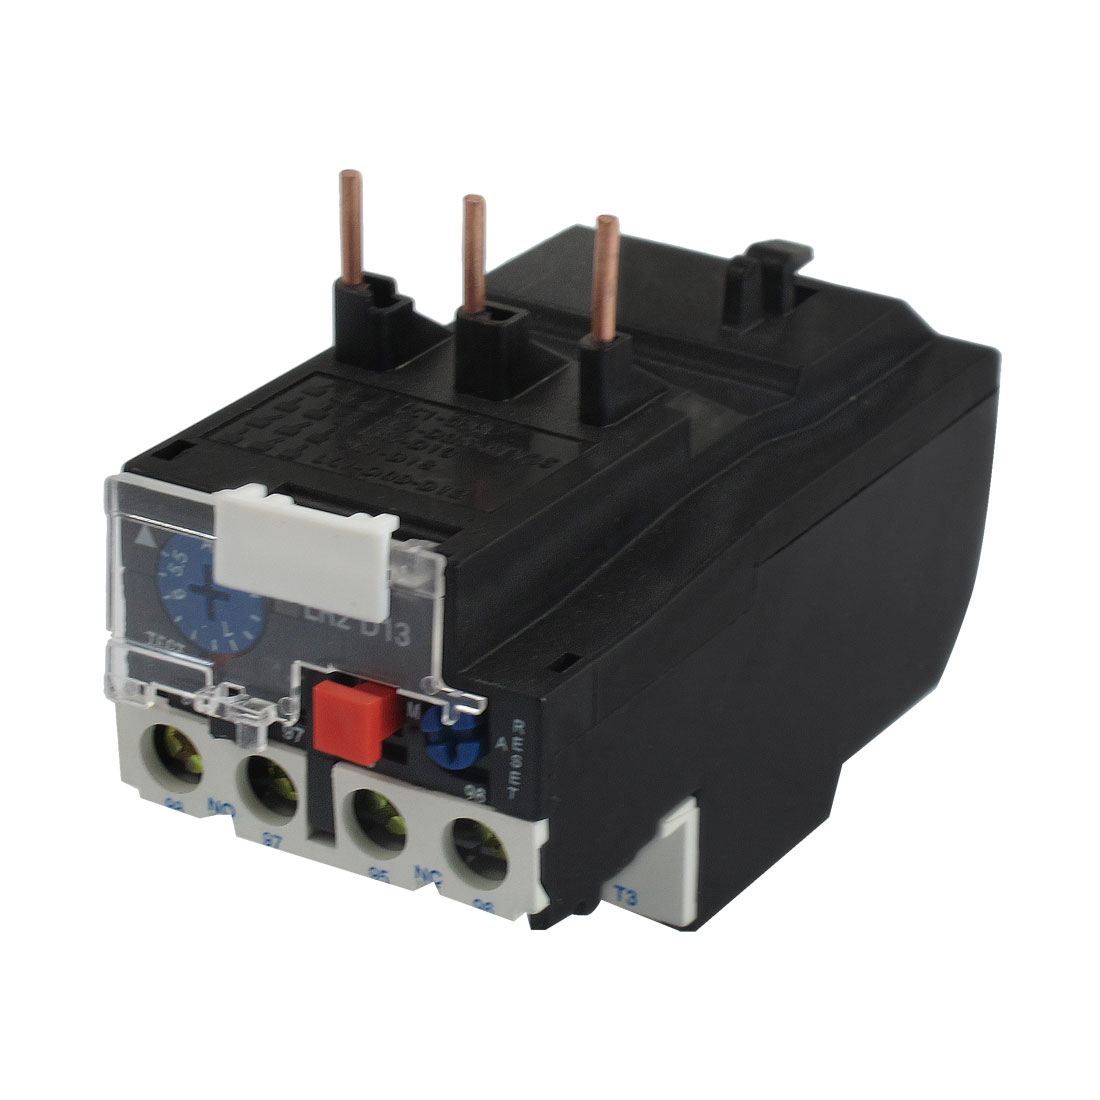 JR28-13 8A 3 Pole 5.5-8A Current Range Motor Protective Thermal Overload Relays